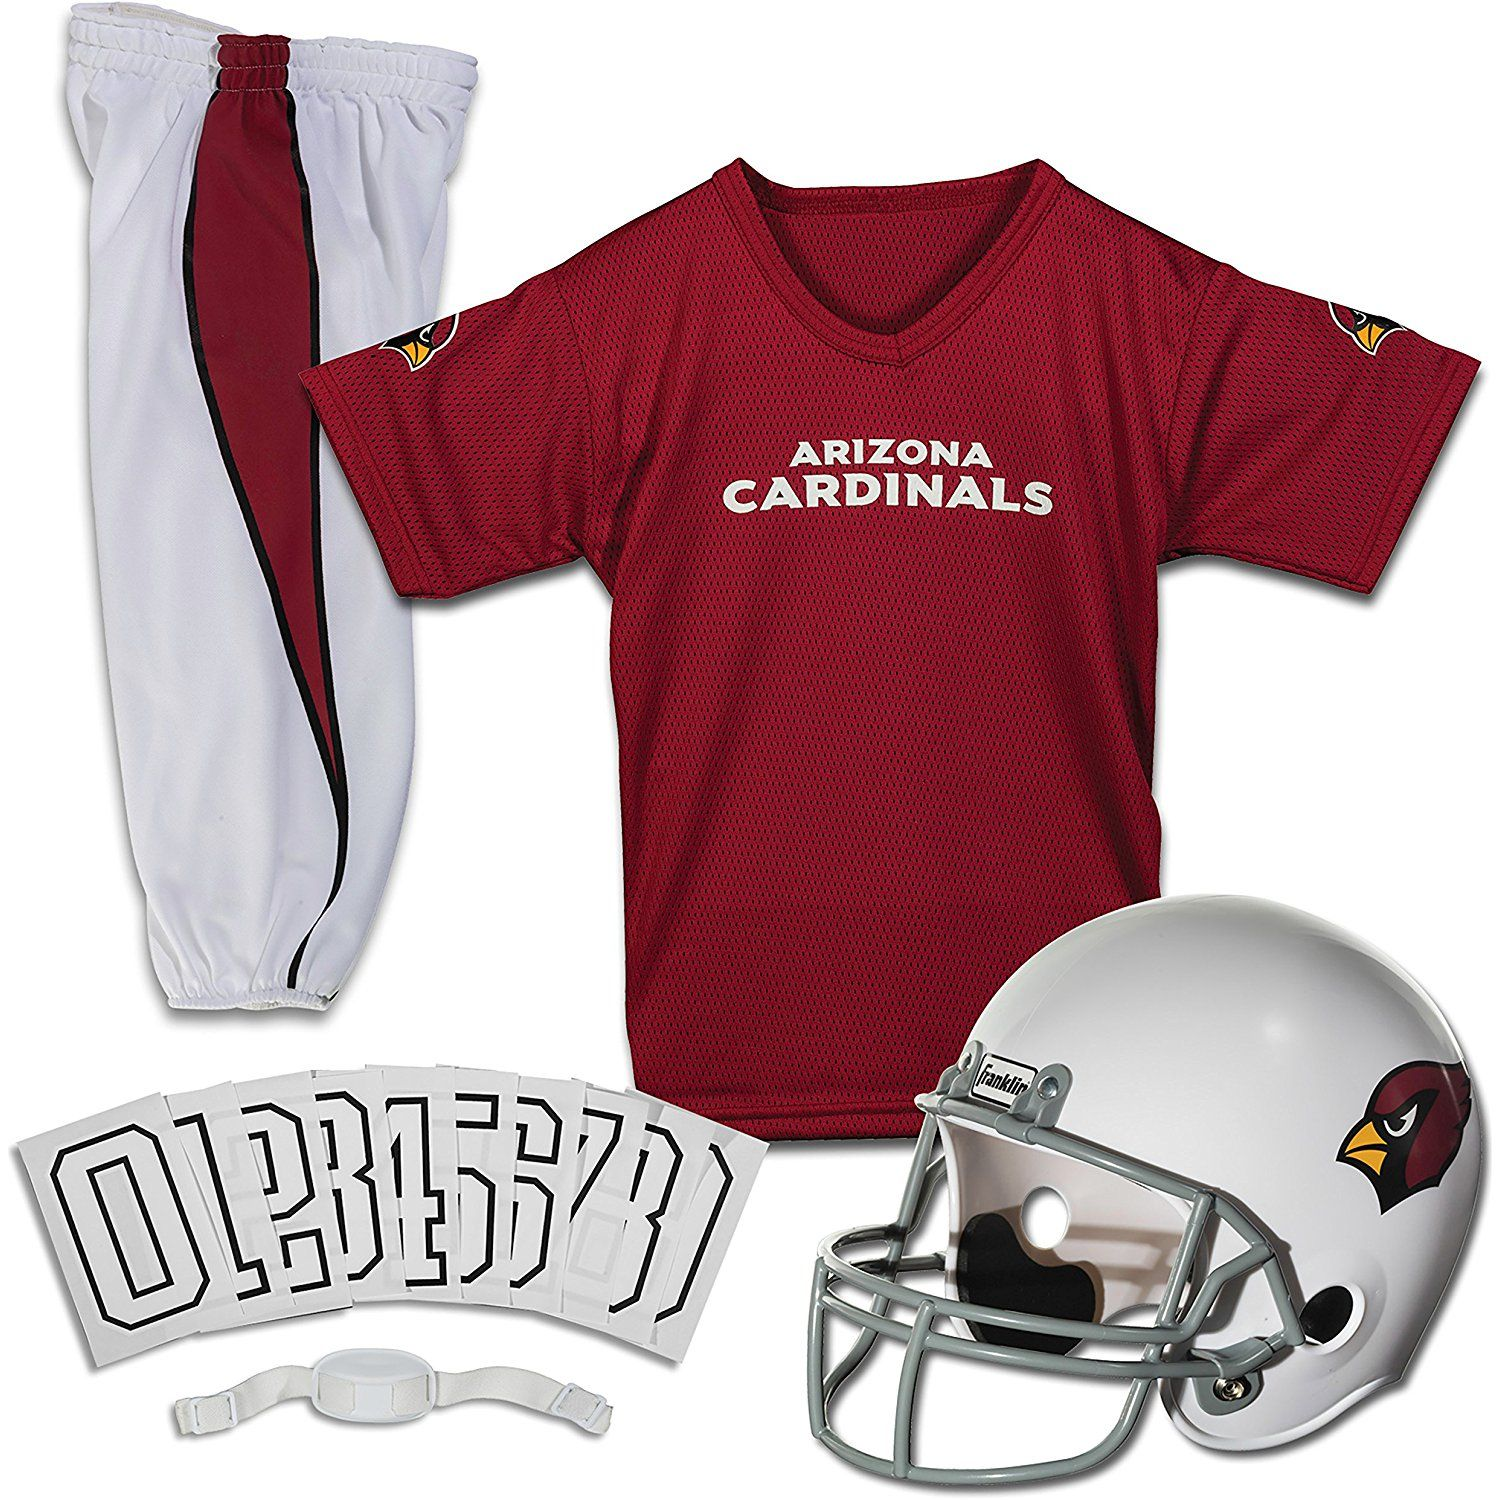 Franklin sports nfl deluxe youth uniform set read more